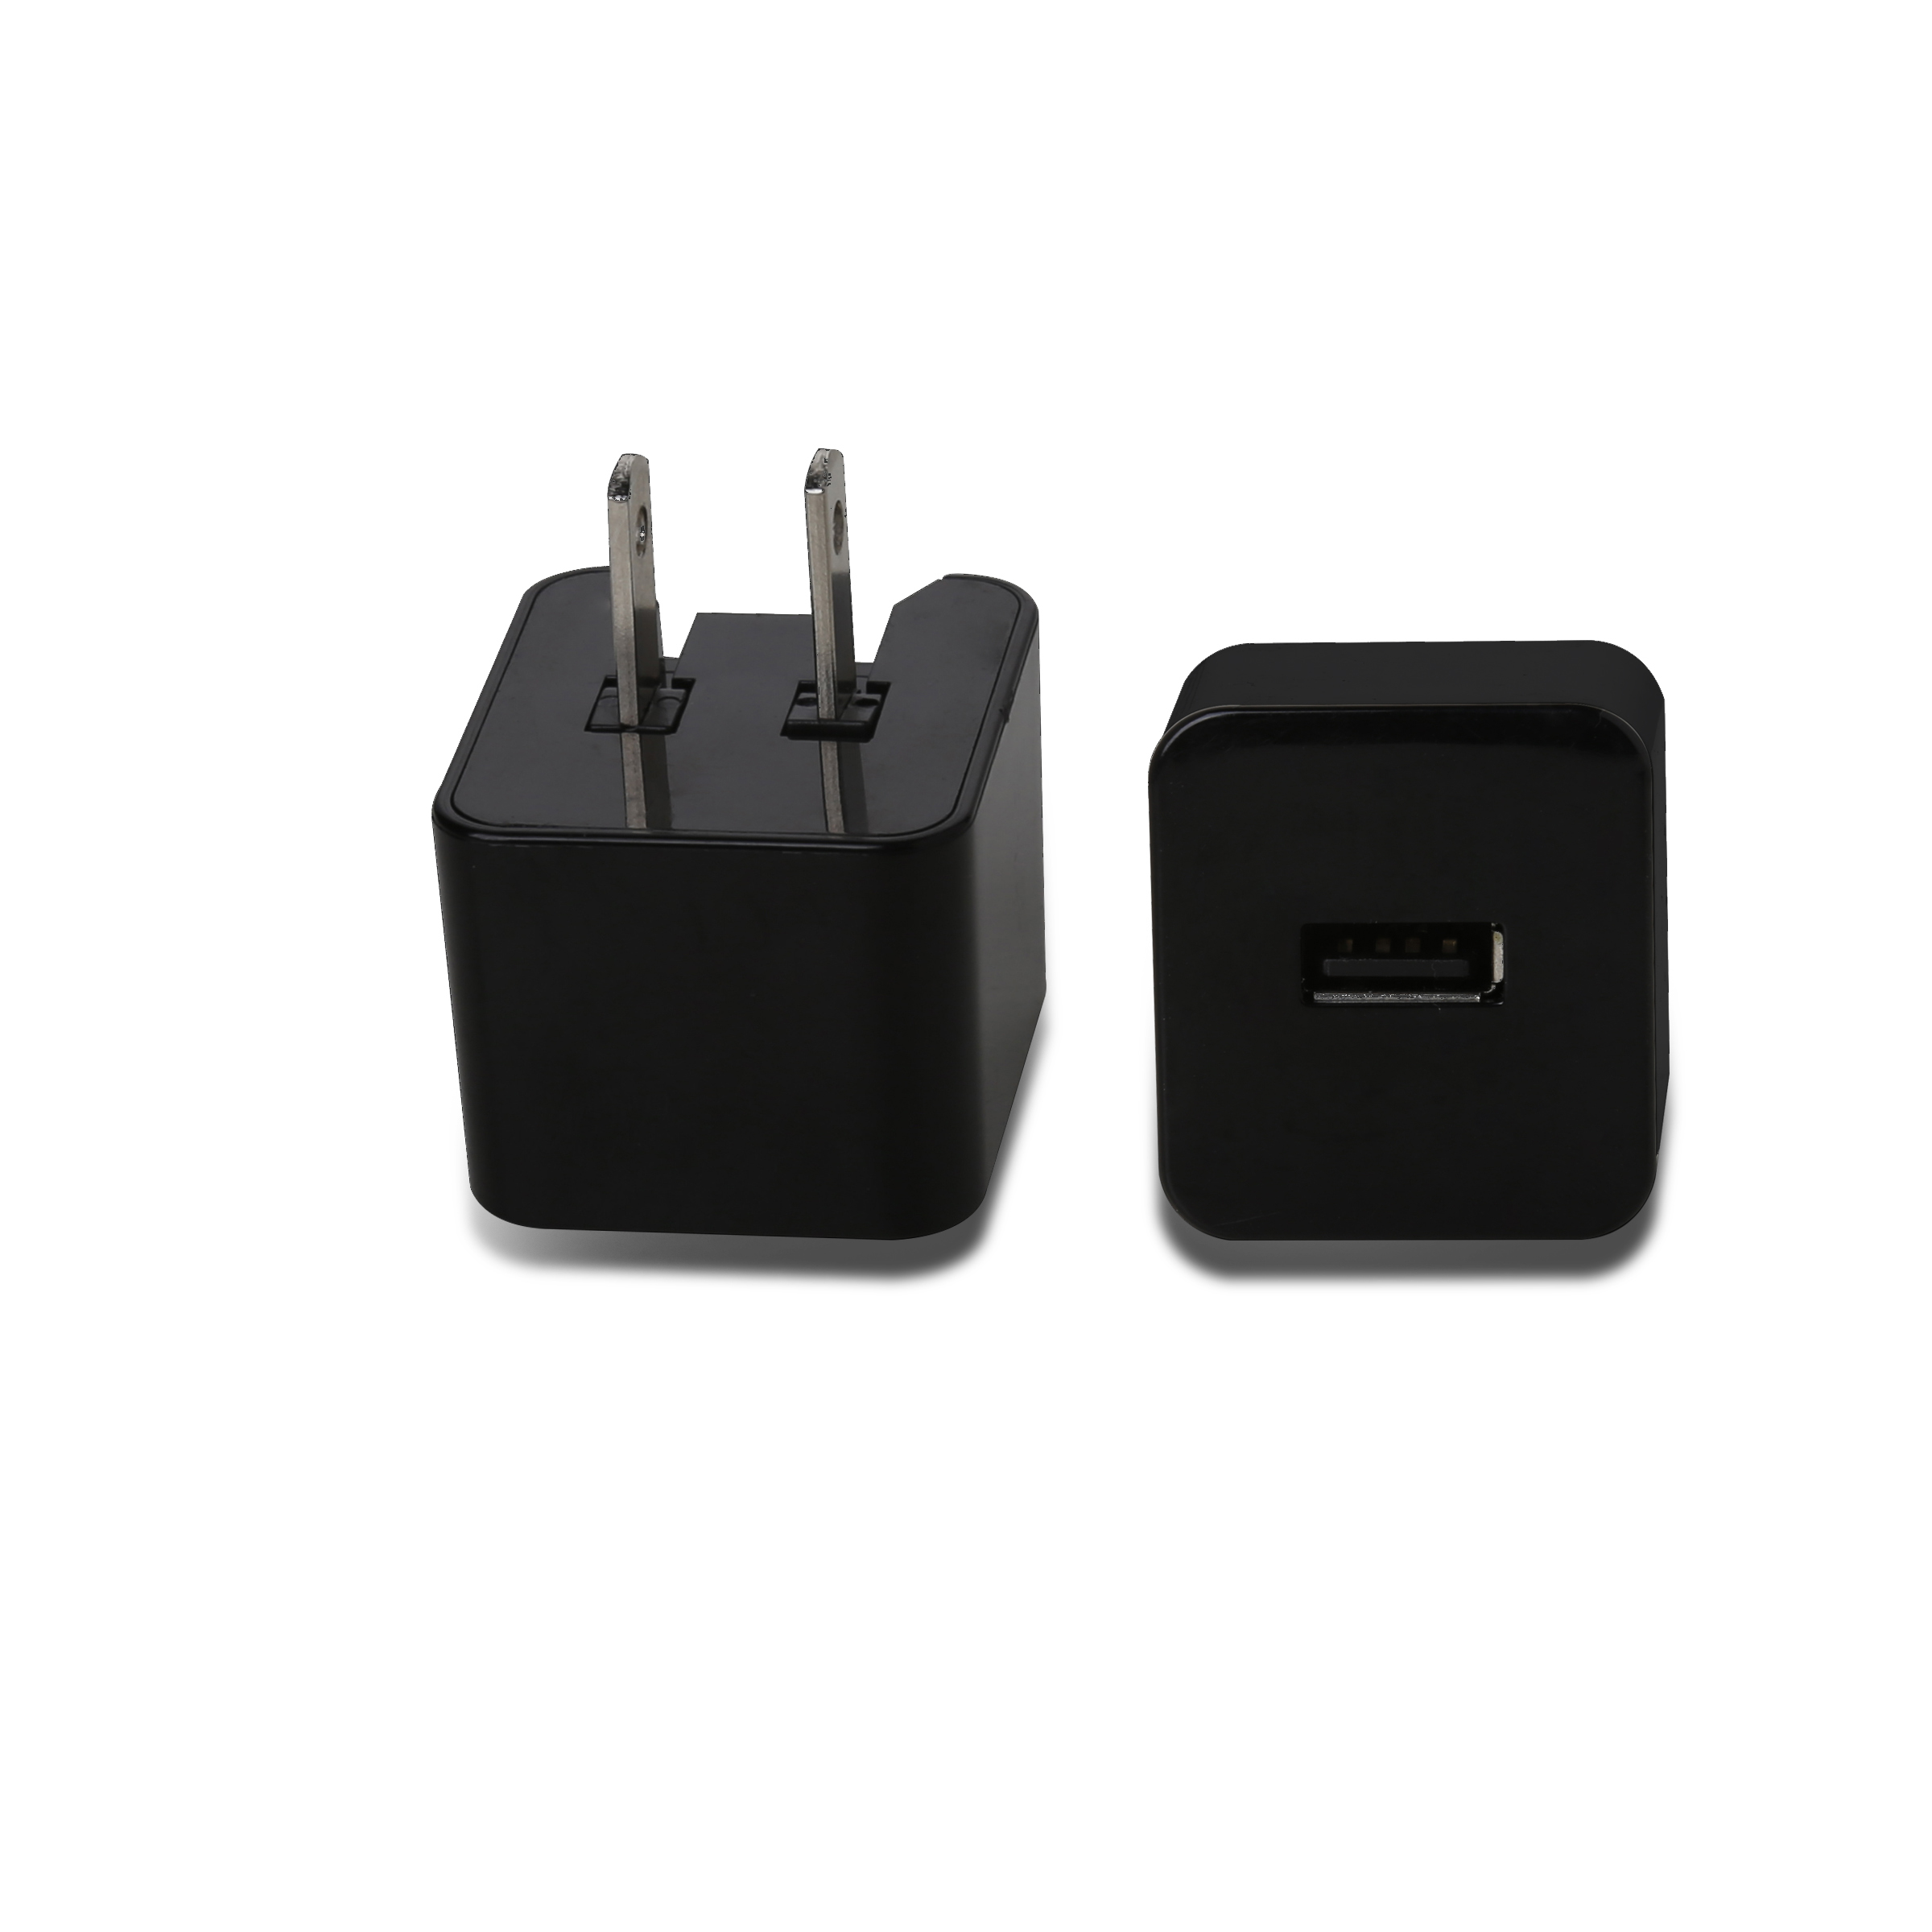 Small but elegant mobile phone charger, wall charger travel charger 5V1A T07